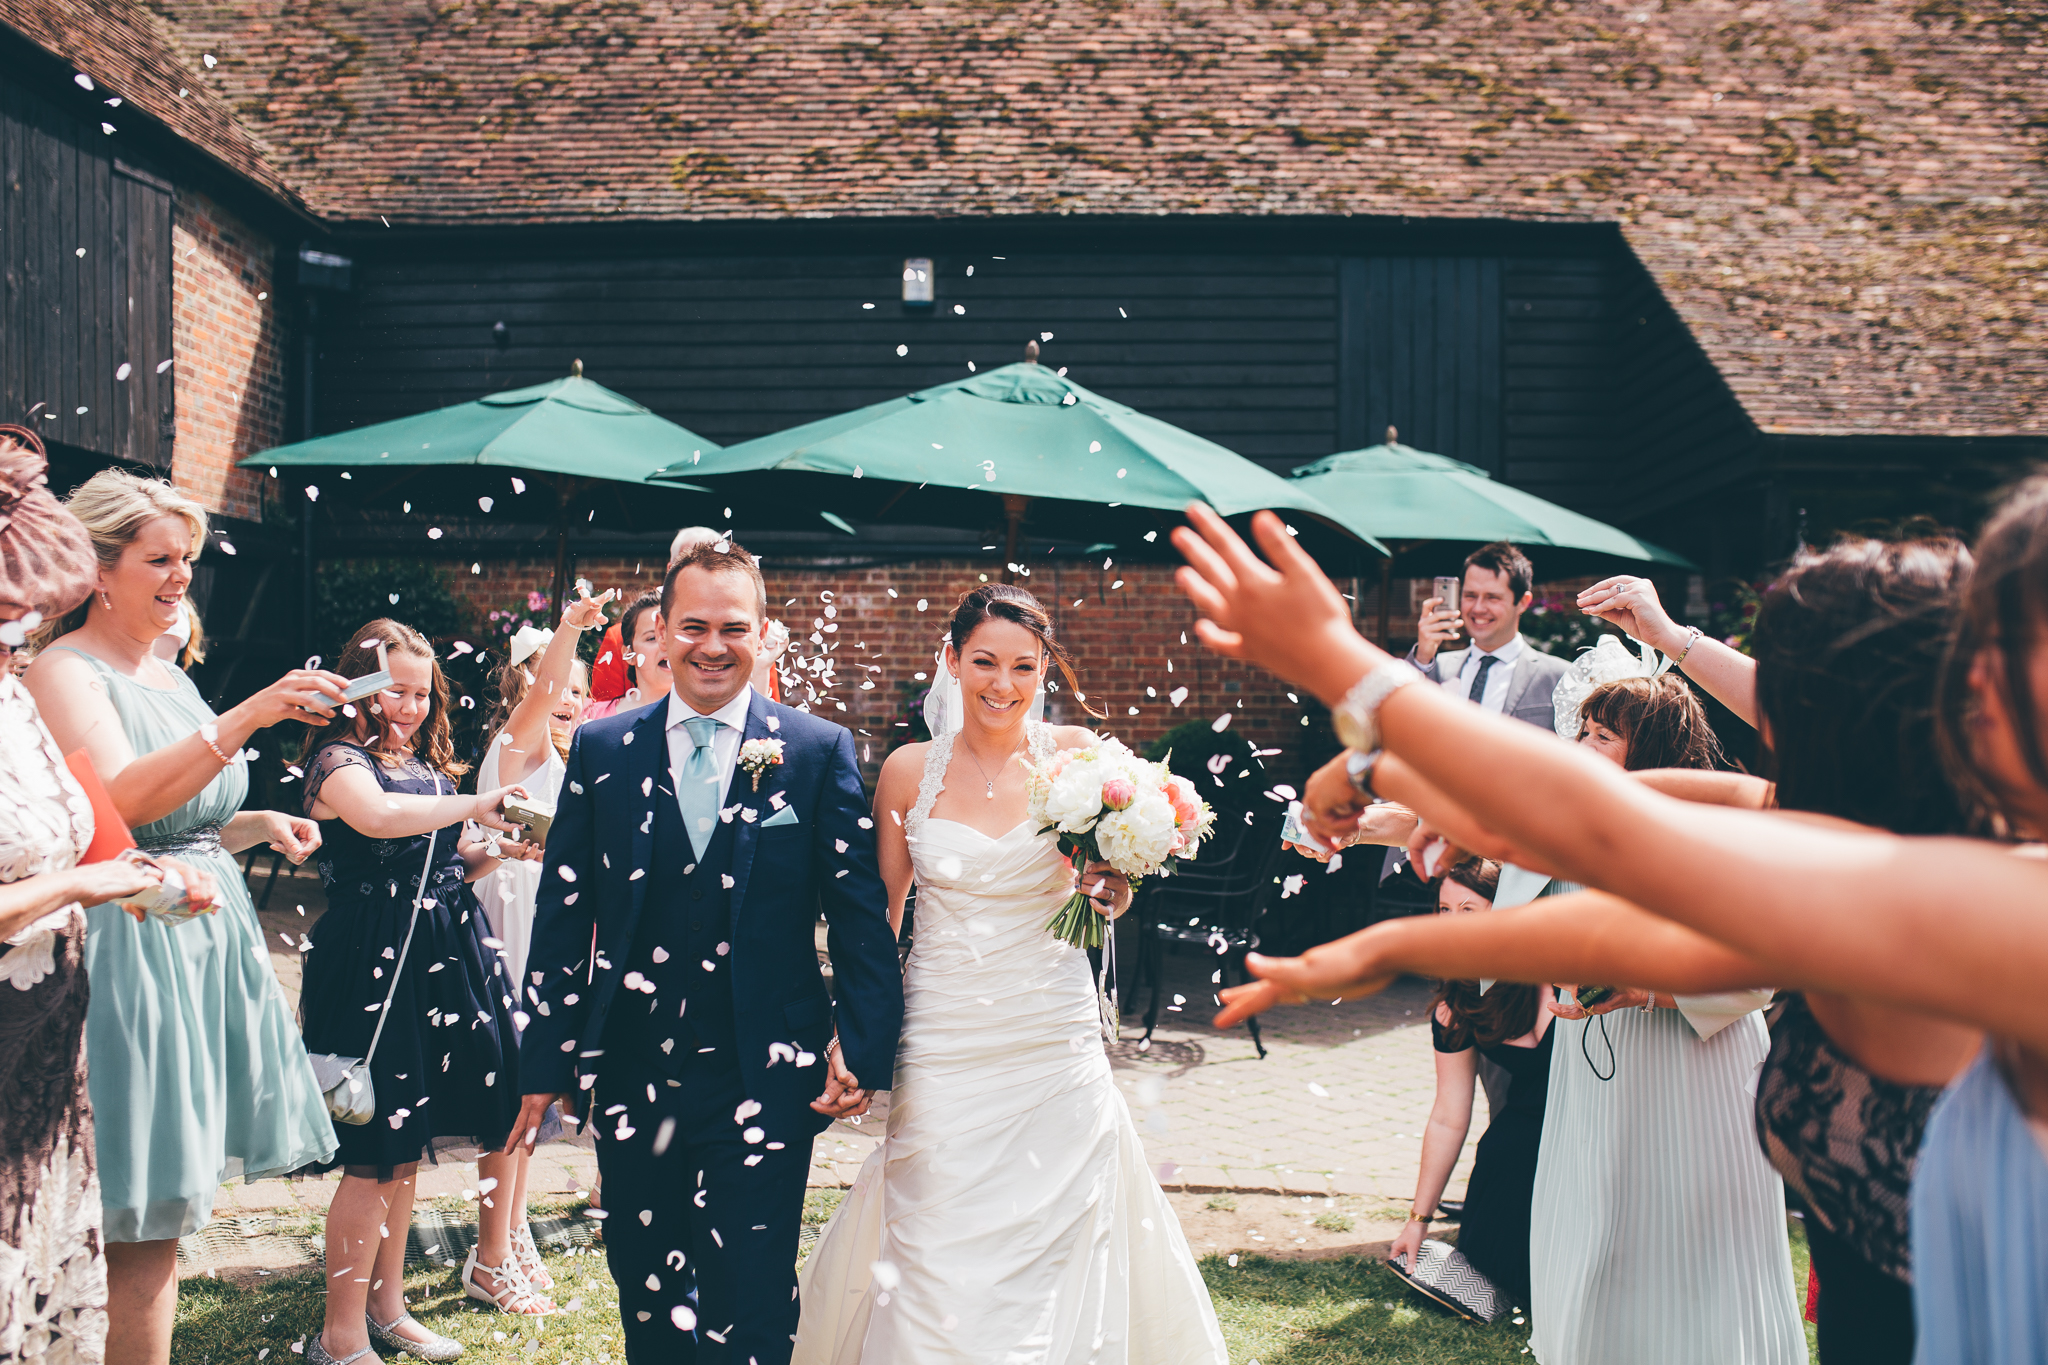 Joanna Nicole Photography Creative artistic wedding photography kent cooling castle barns vintage documentary (46 of 106).jpg